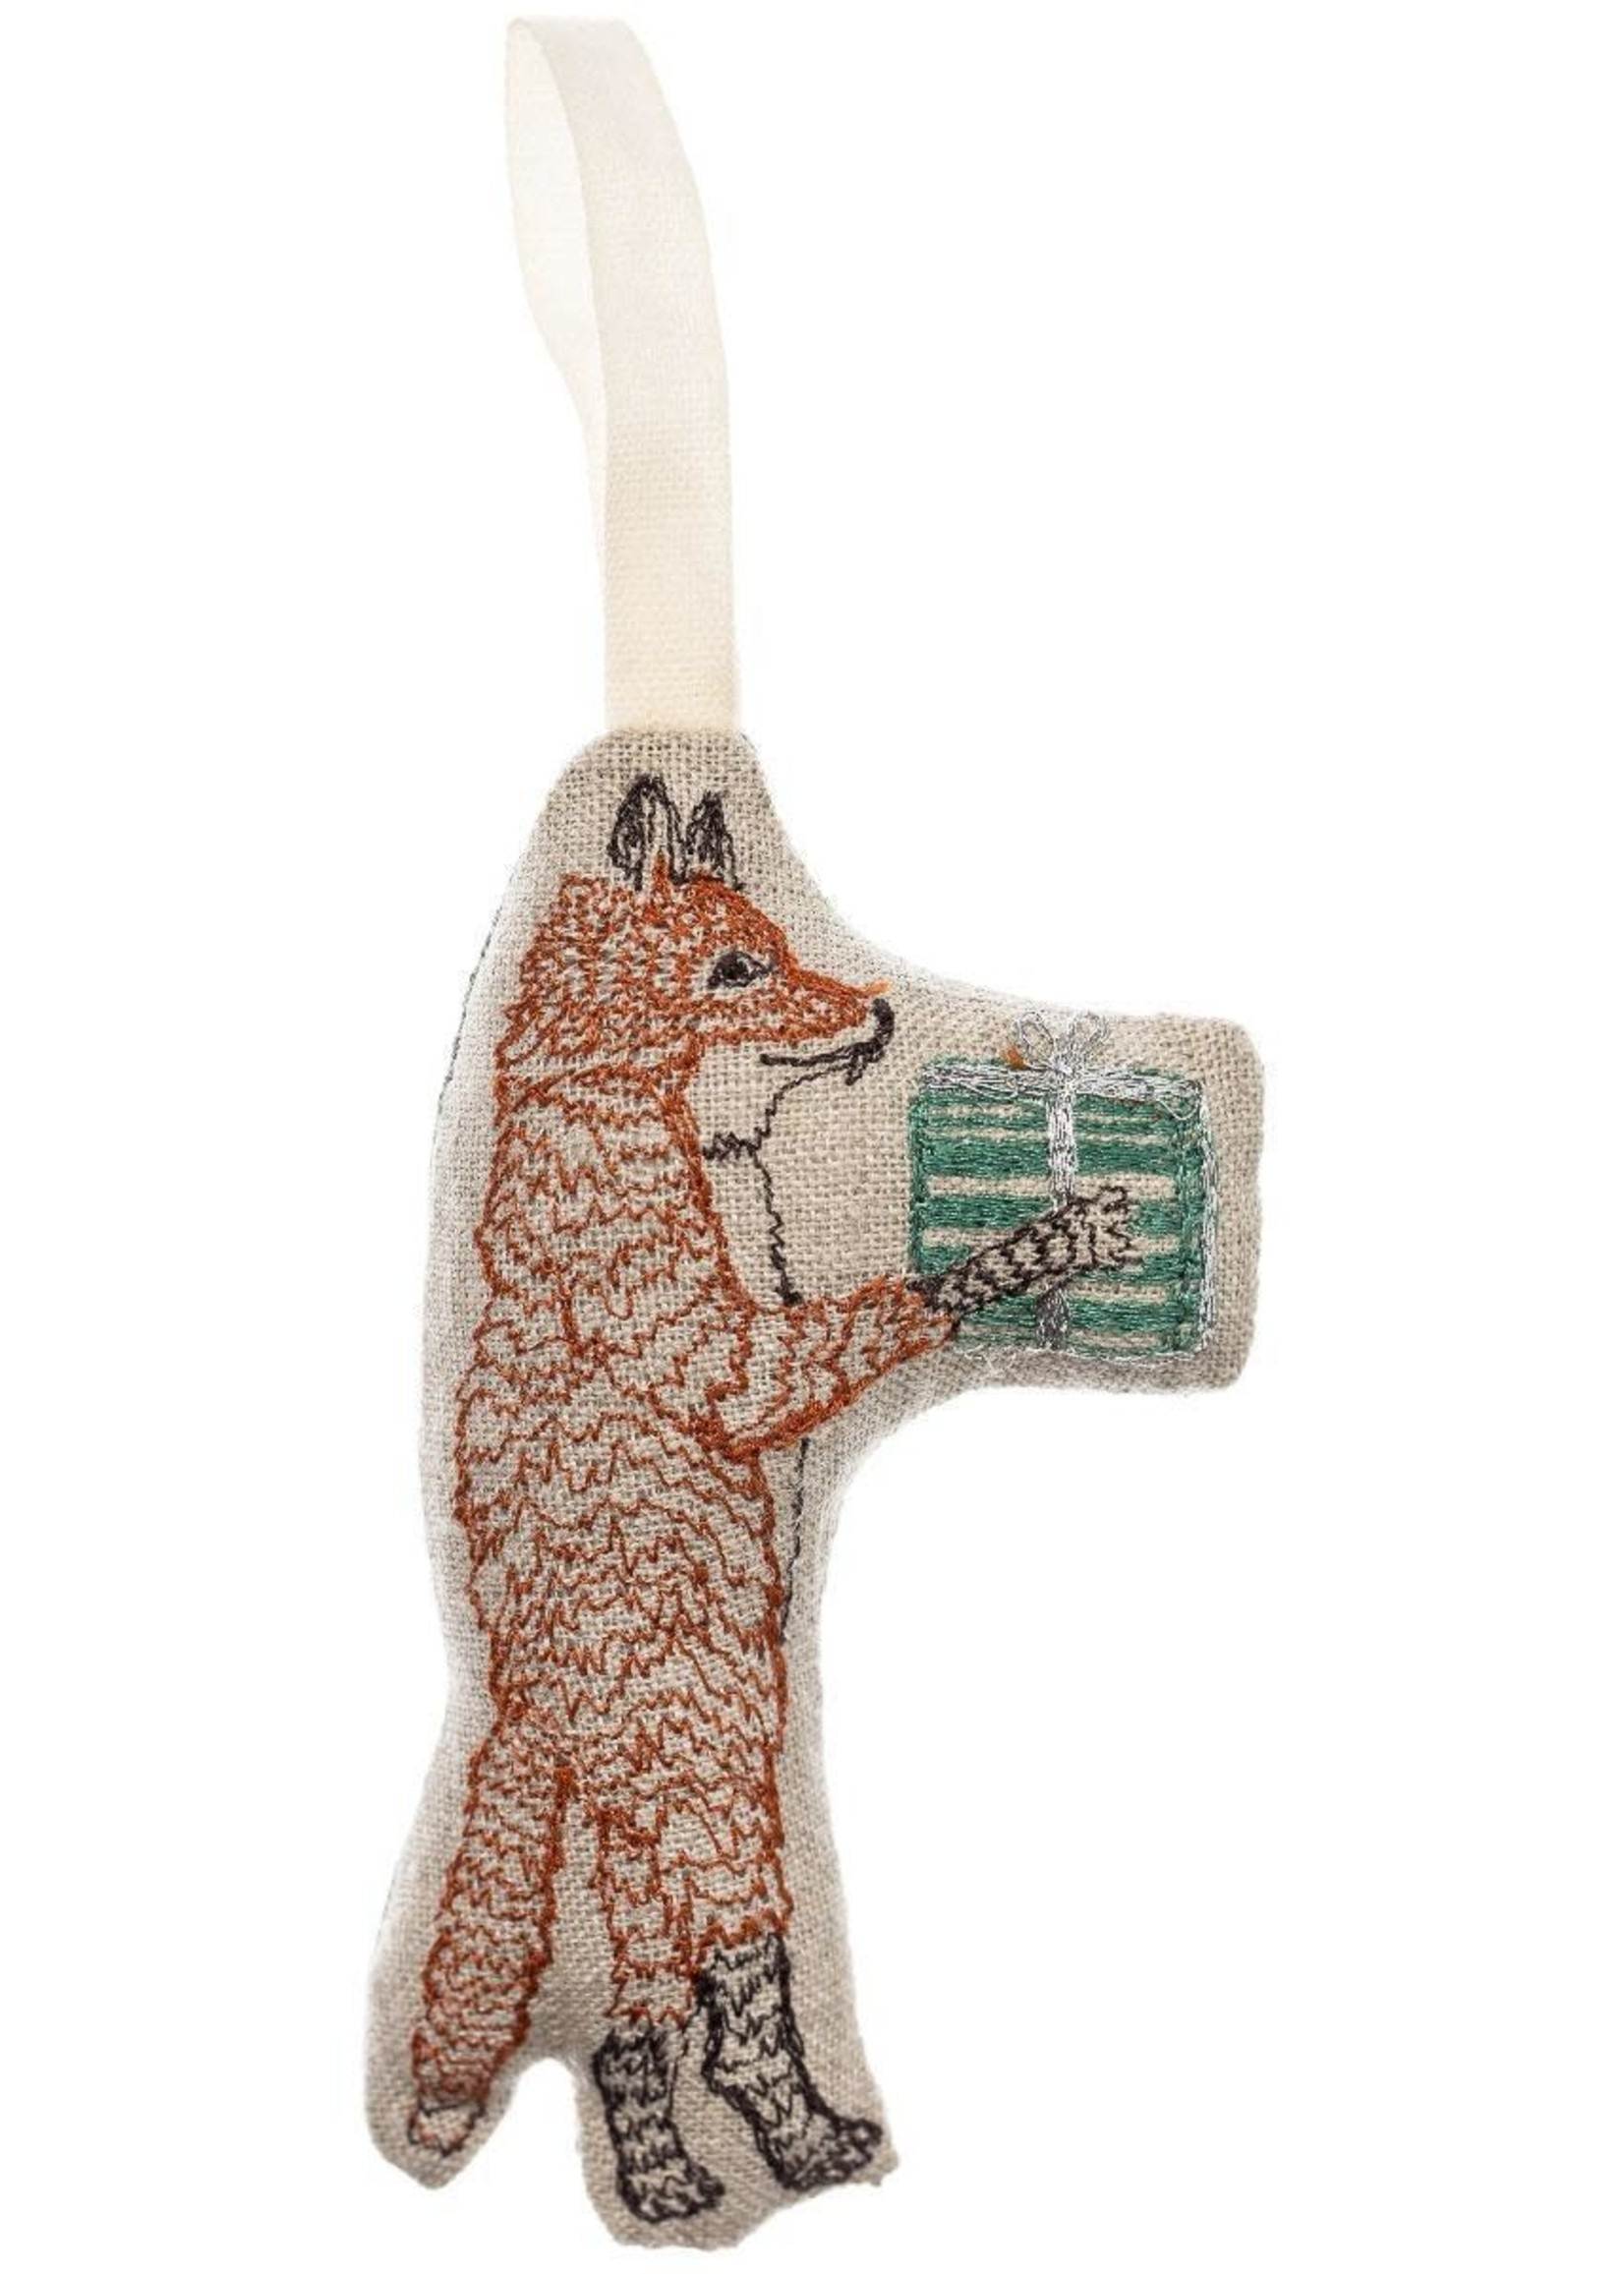 Coral and Tusk Ornament - Fox with Present